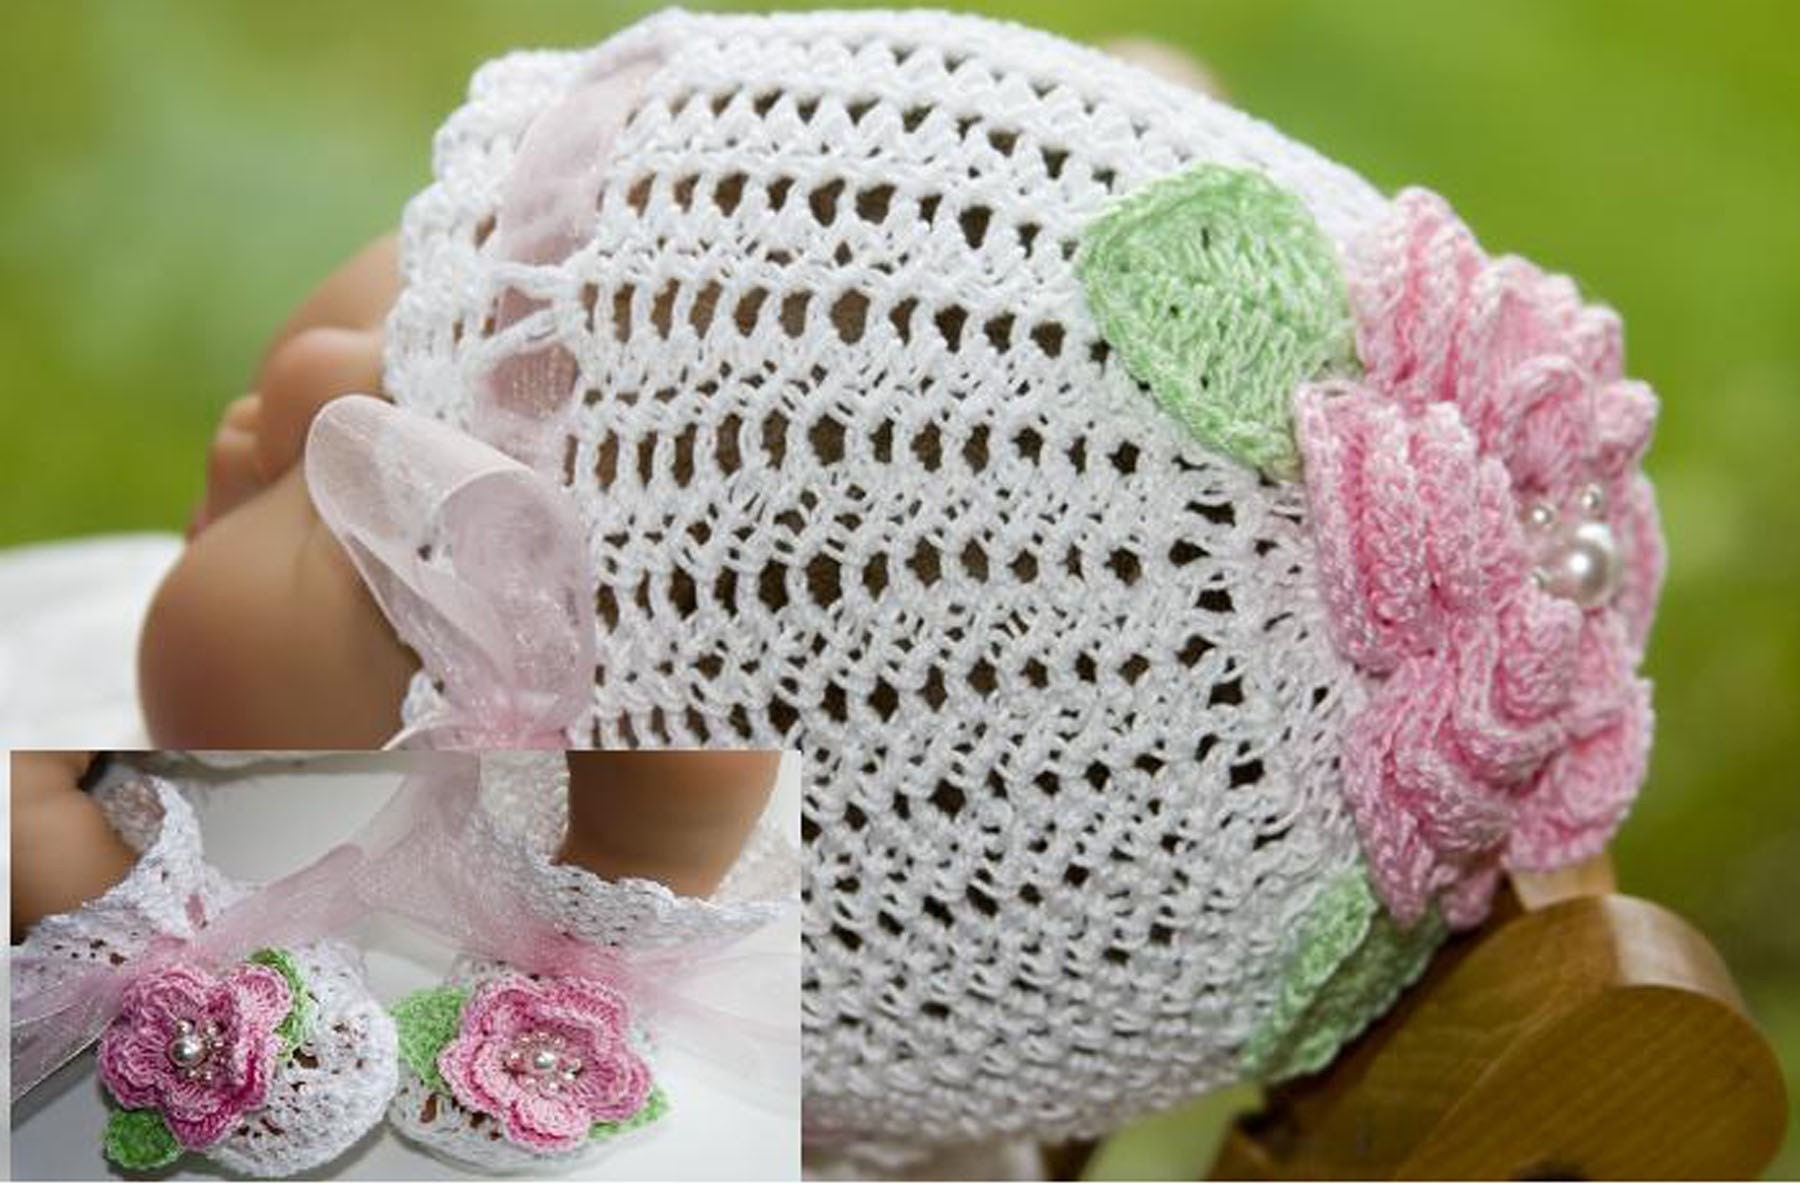 Crochet Baby Bonnet And Booties Pattern : Cheryls Crochet CC36 Victorian Rose Baby Bootie and Bonnet